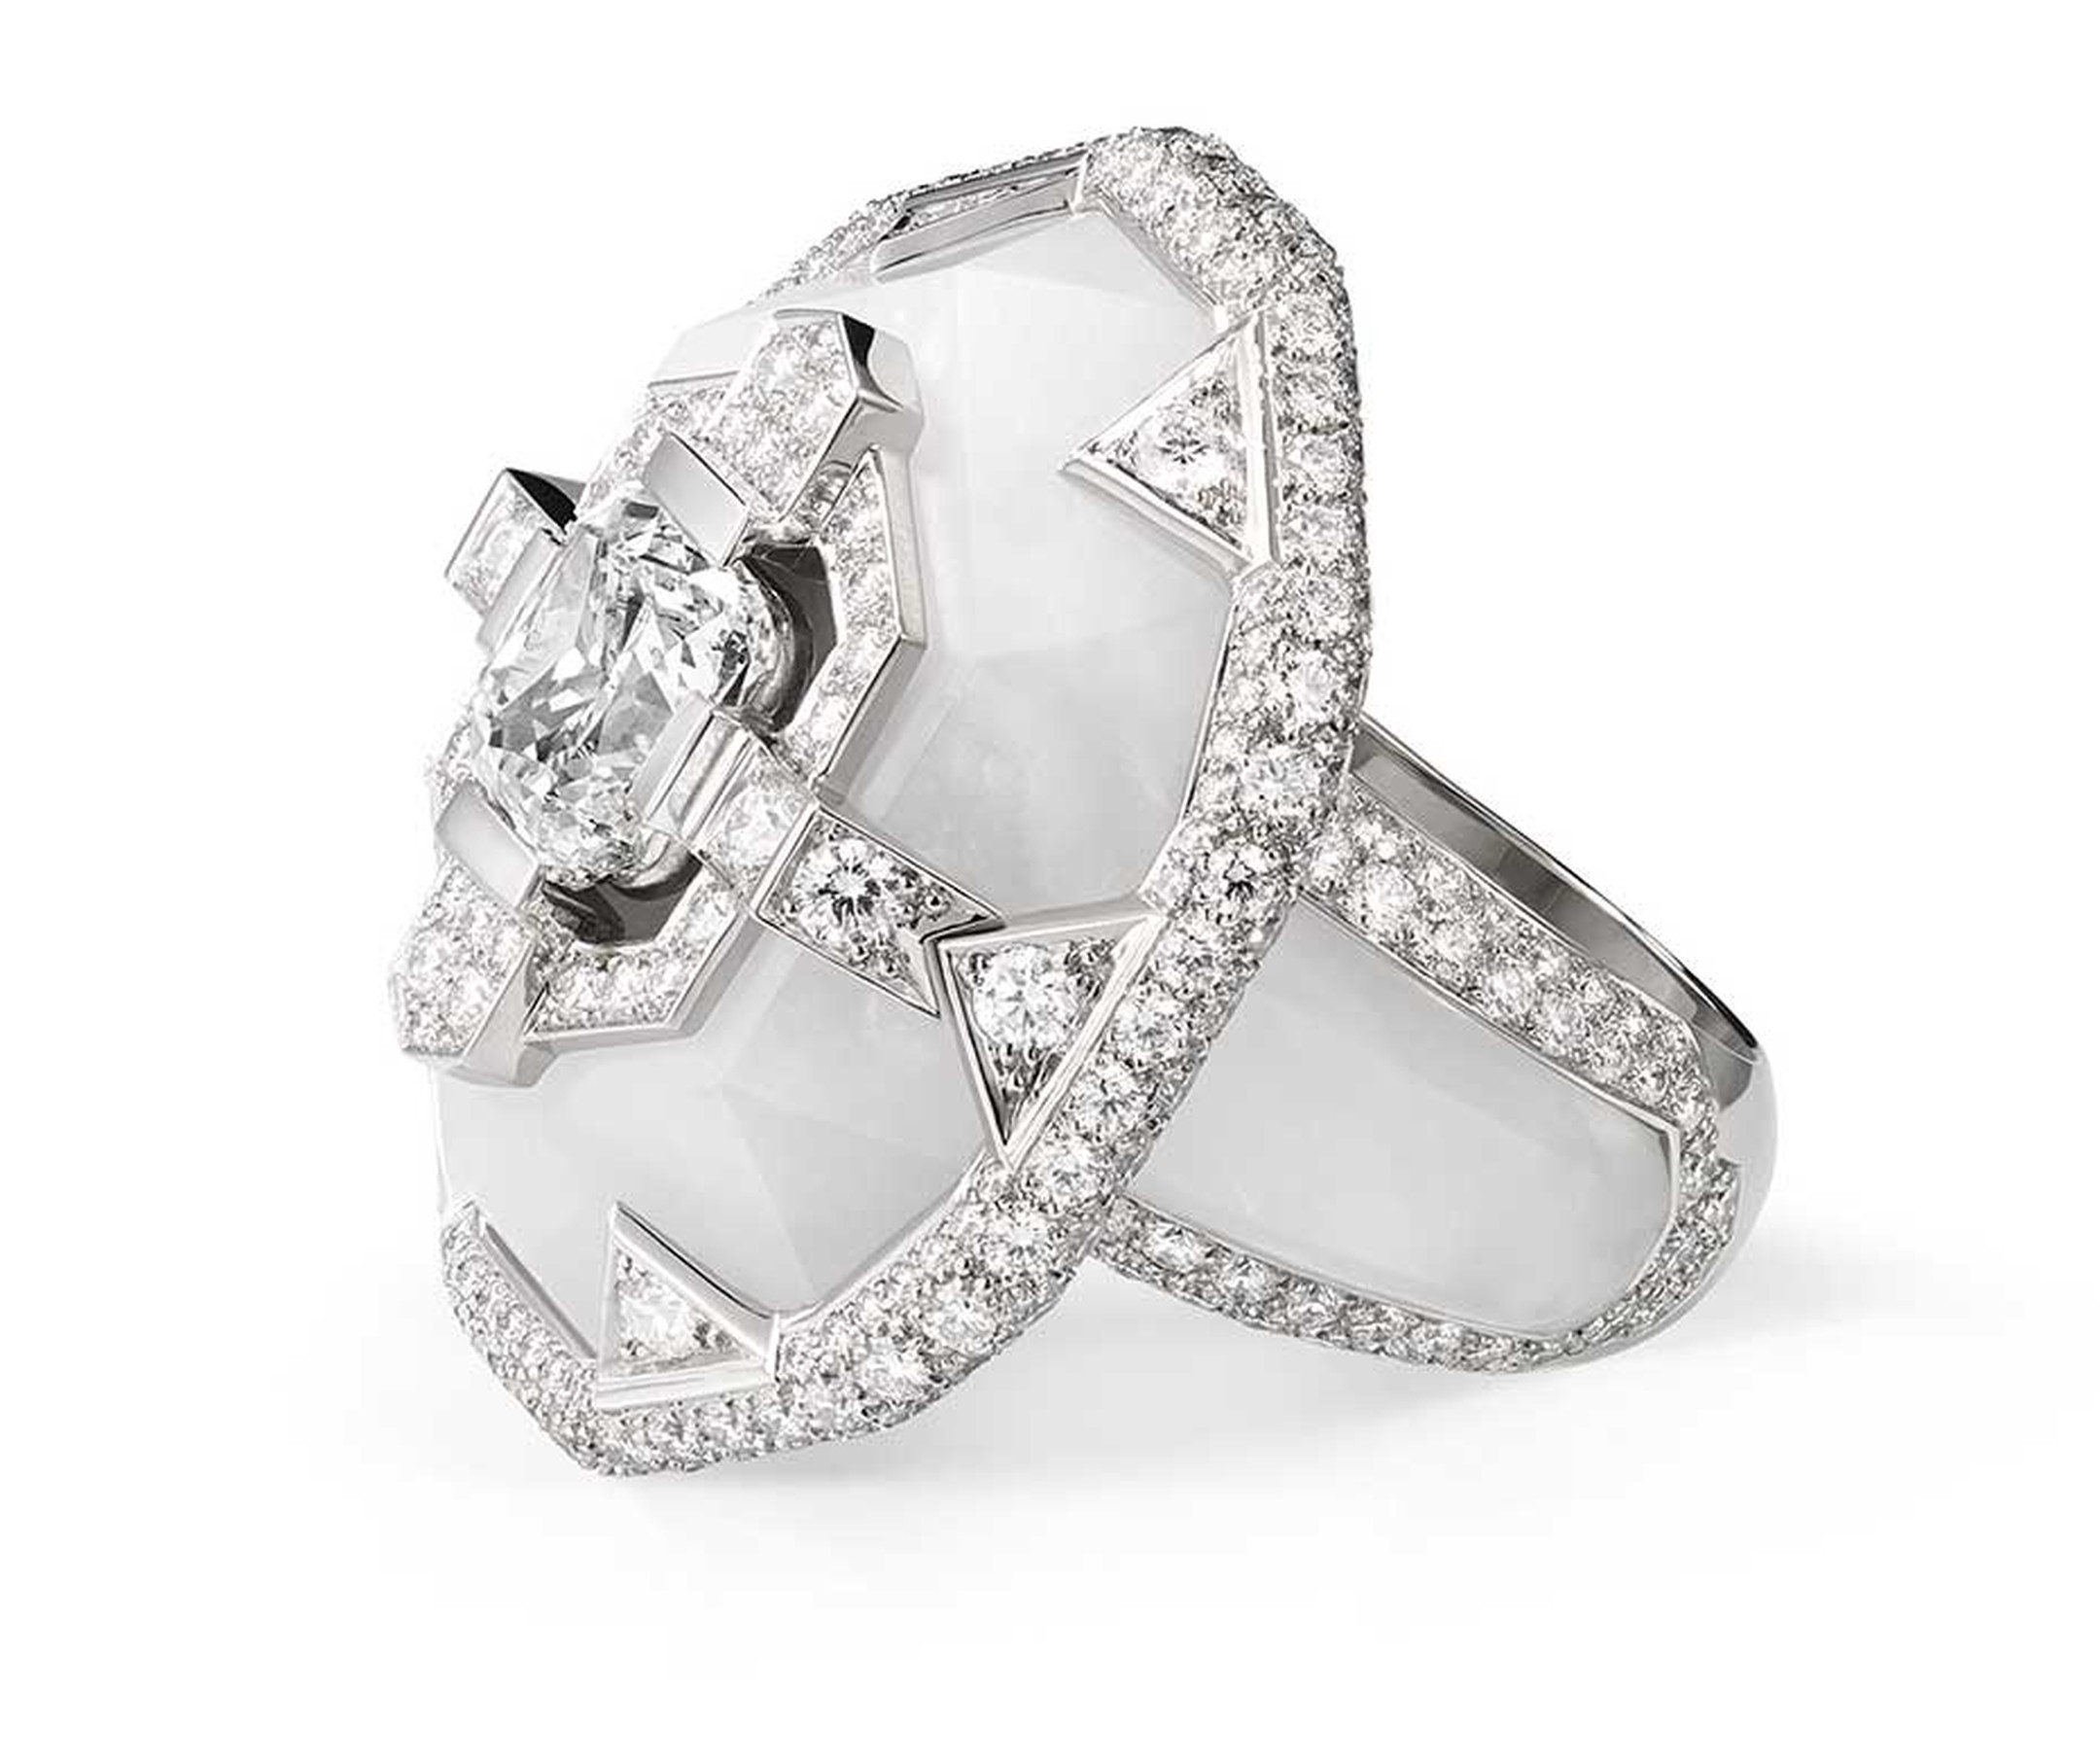 Chaumet Lumieres d'Eau high jewellery ring in platinum and rock crystal, set with a central cushion-cut diamond, brilliant-cut and troidia-cut diamonds.